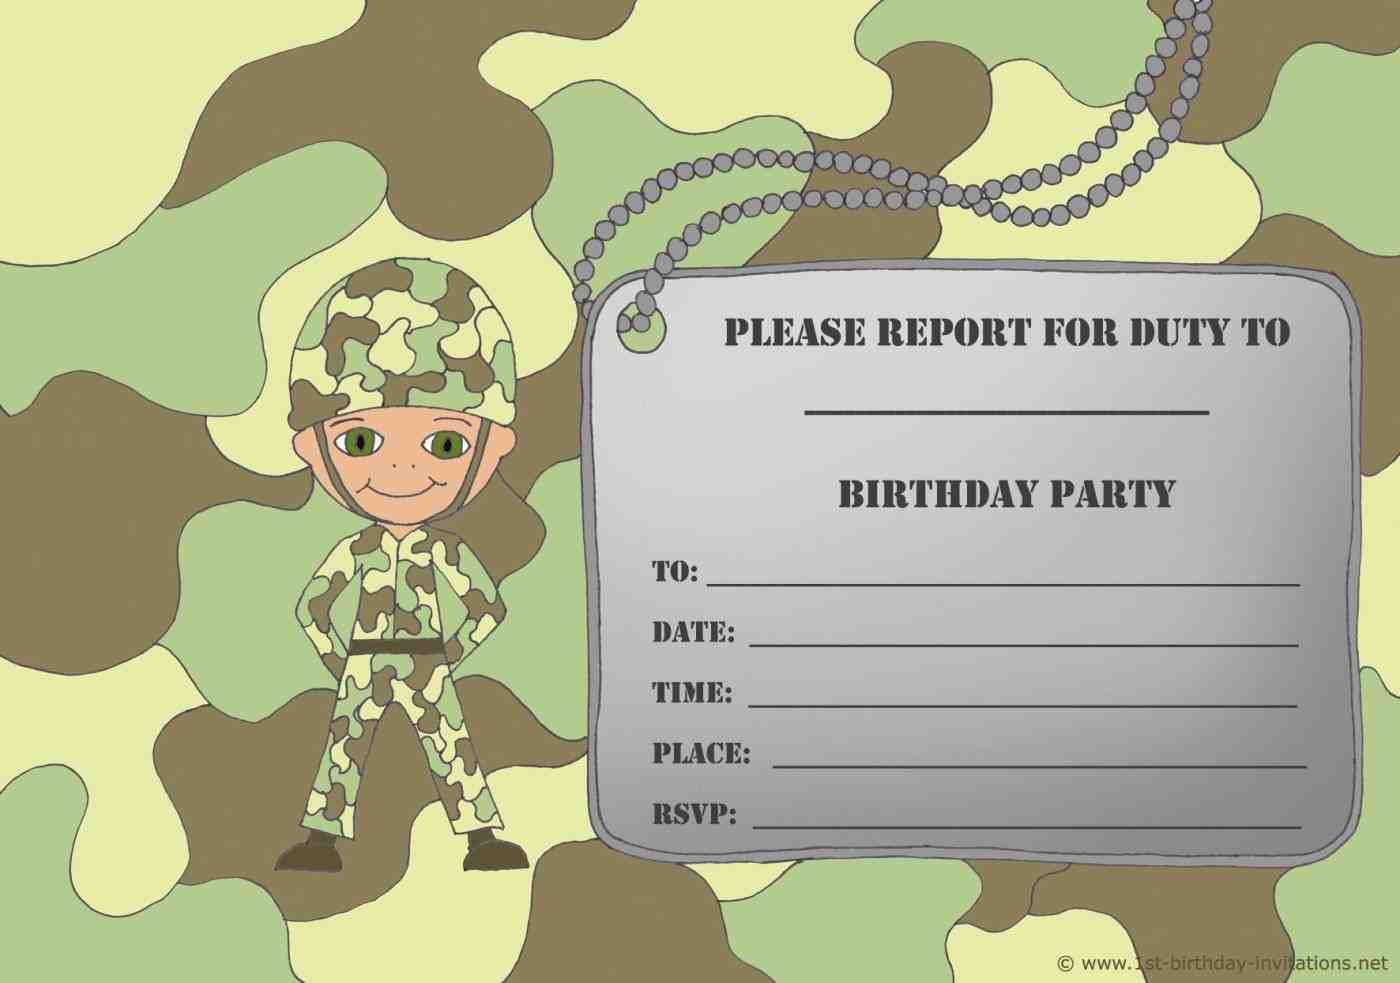 design your own birthday invitations with easy on the eye appearance ...